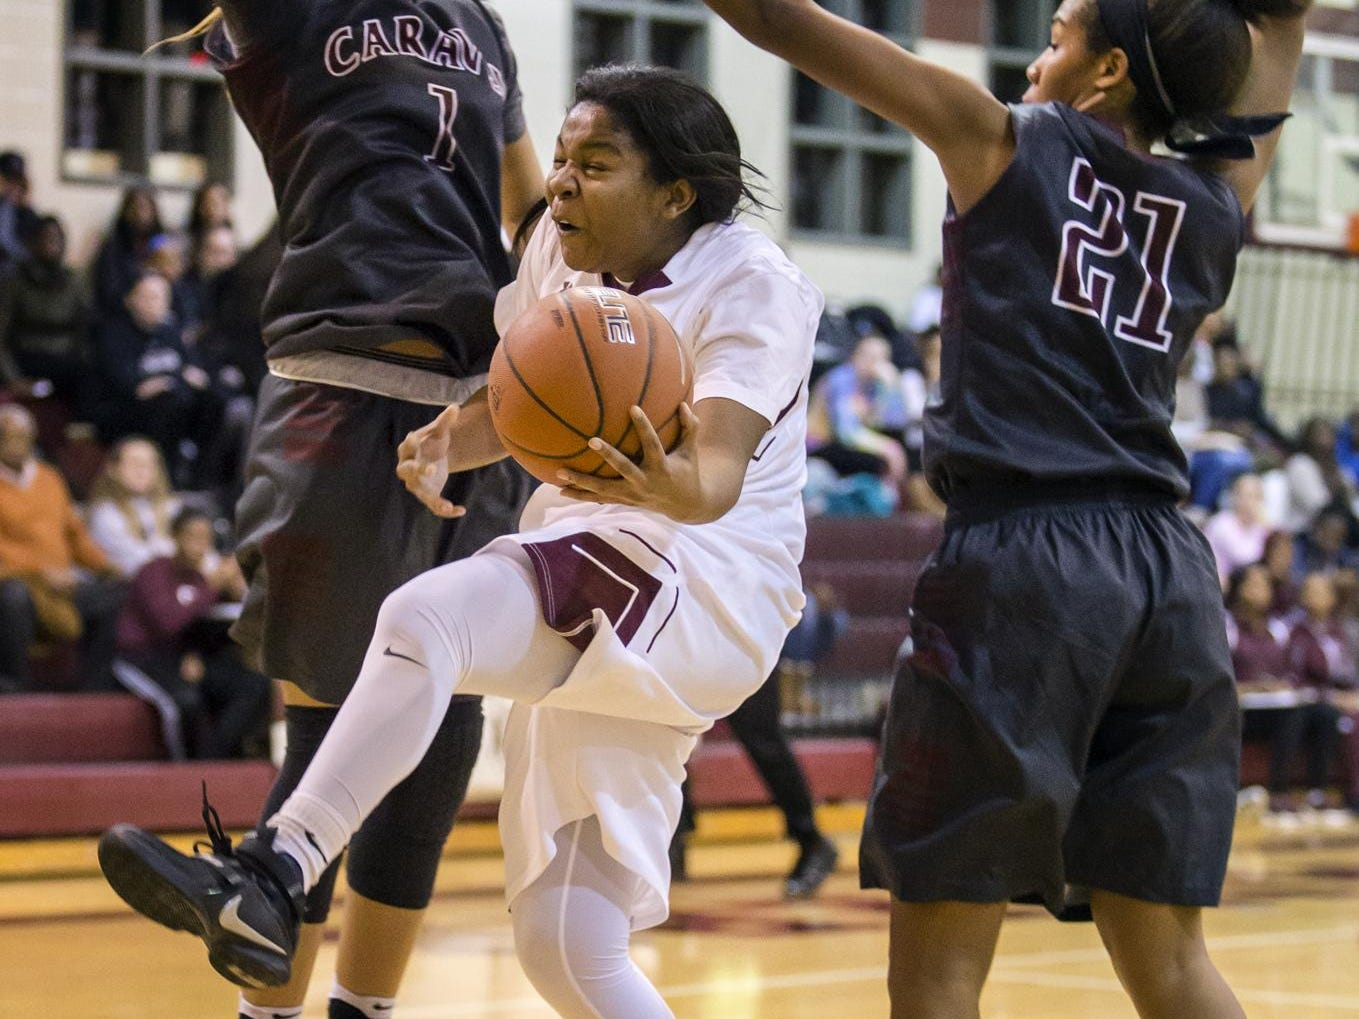 Concord's Jamiyah Dennis puts up a shot as she ducks between Caravel's Ondia Brown (No. 1) and Kaylee Otlowski (No. 21) in the first half of Caravel's 42-26 win over Concord at Concord High School on Monday night.